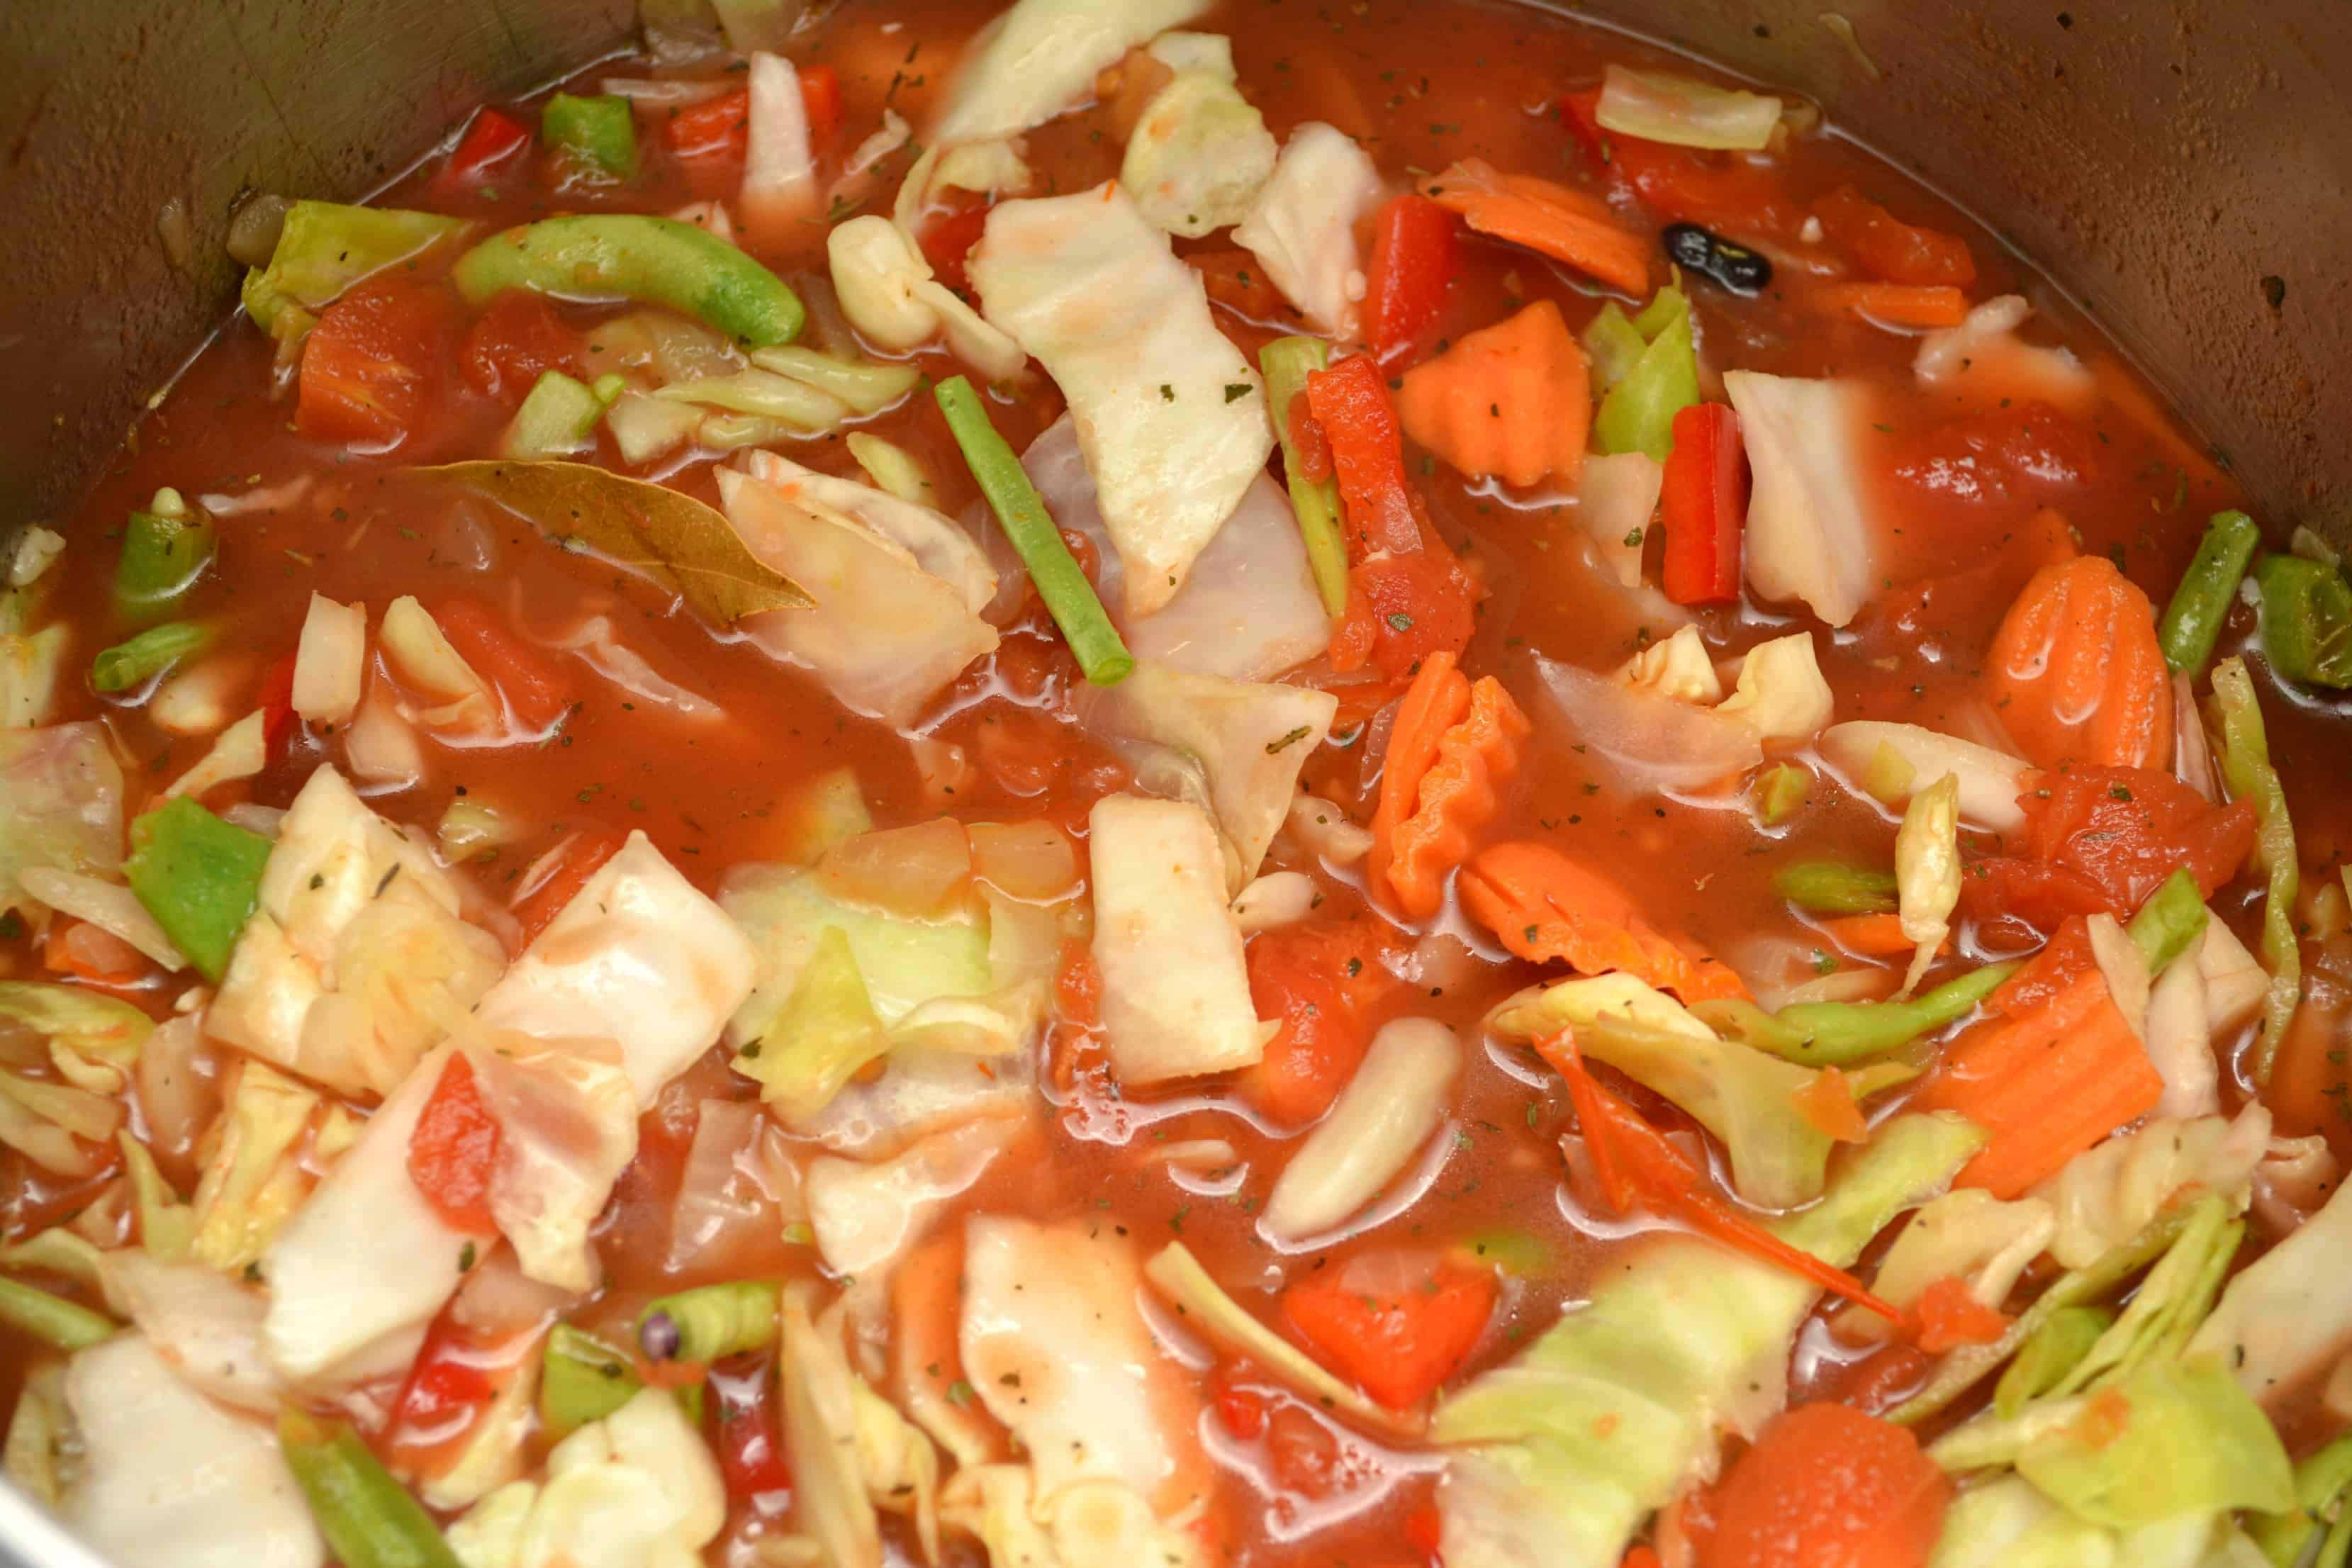 process of cabbage soup cooking in a big pot